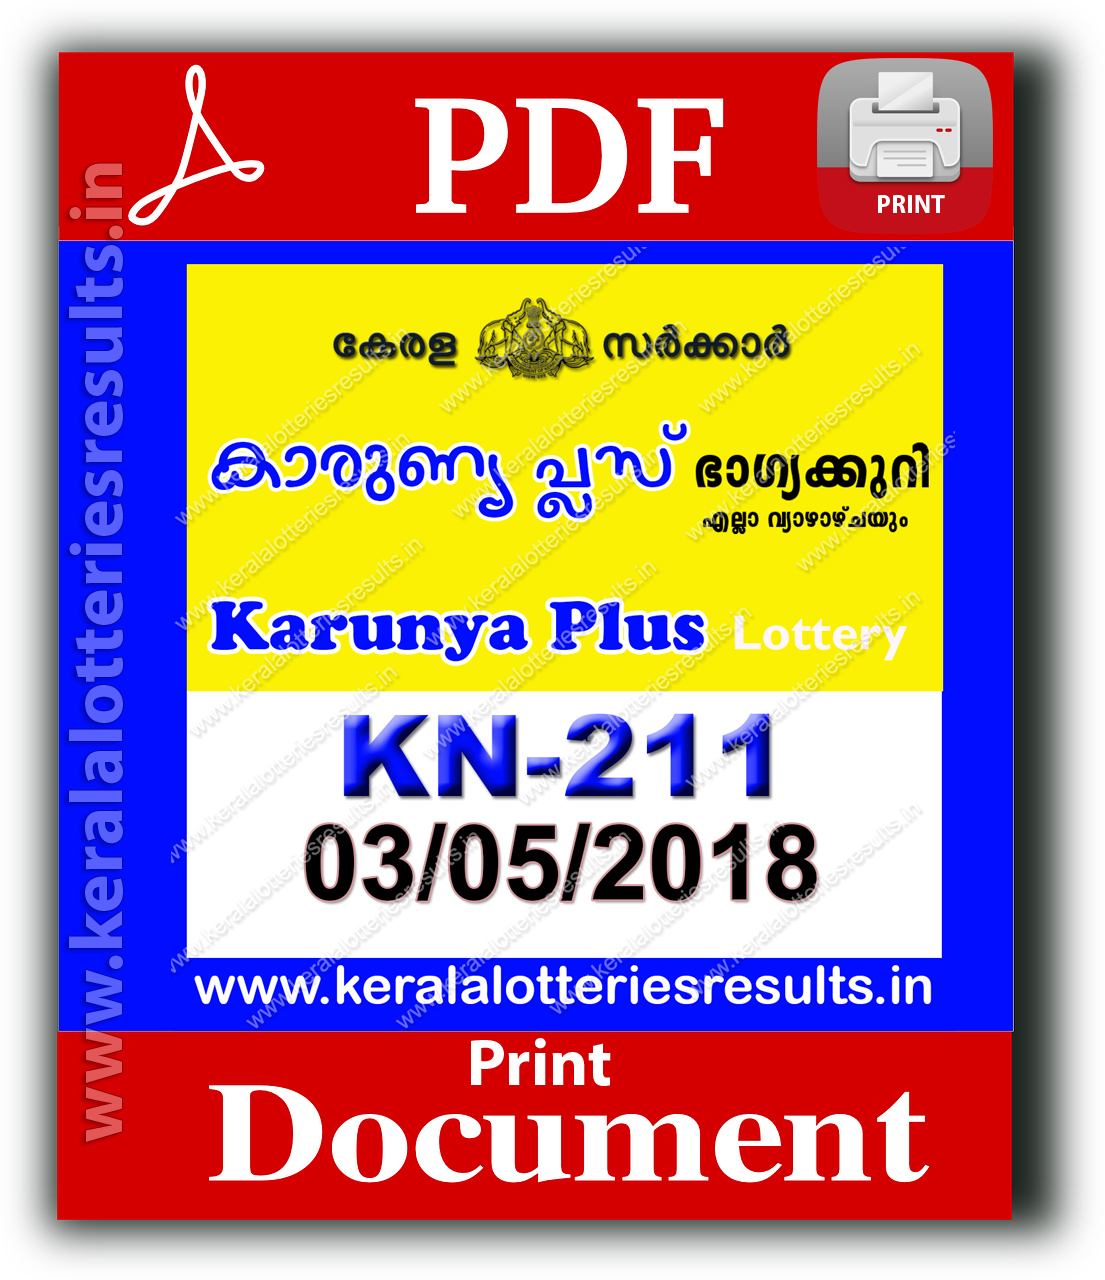 Yesterday lottery result kerala lottery result the lottery